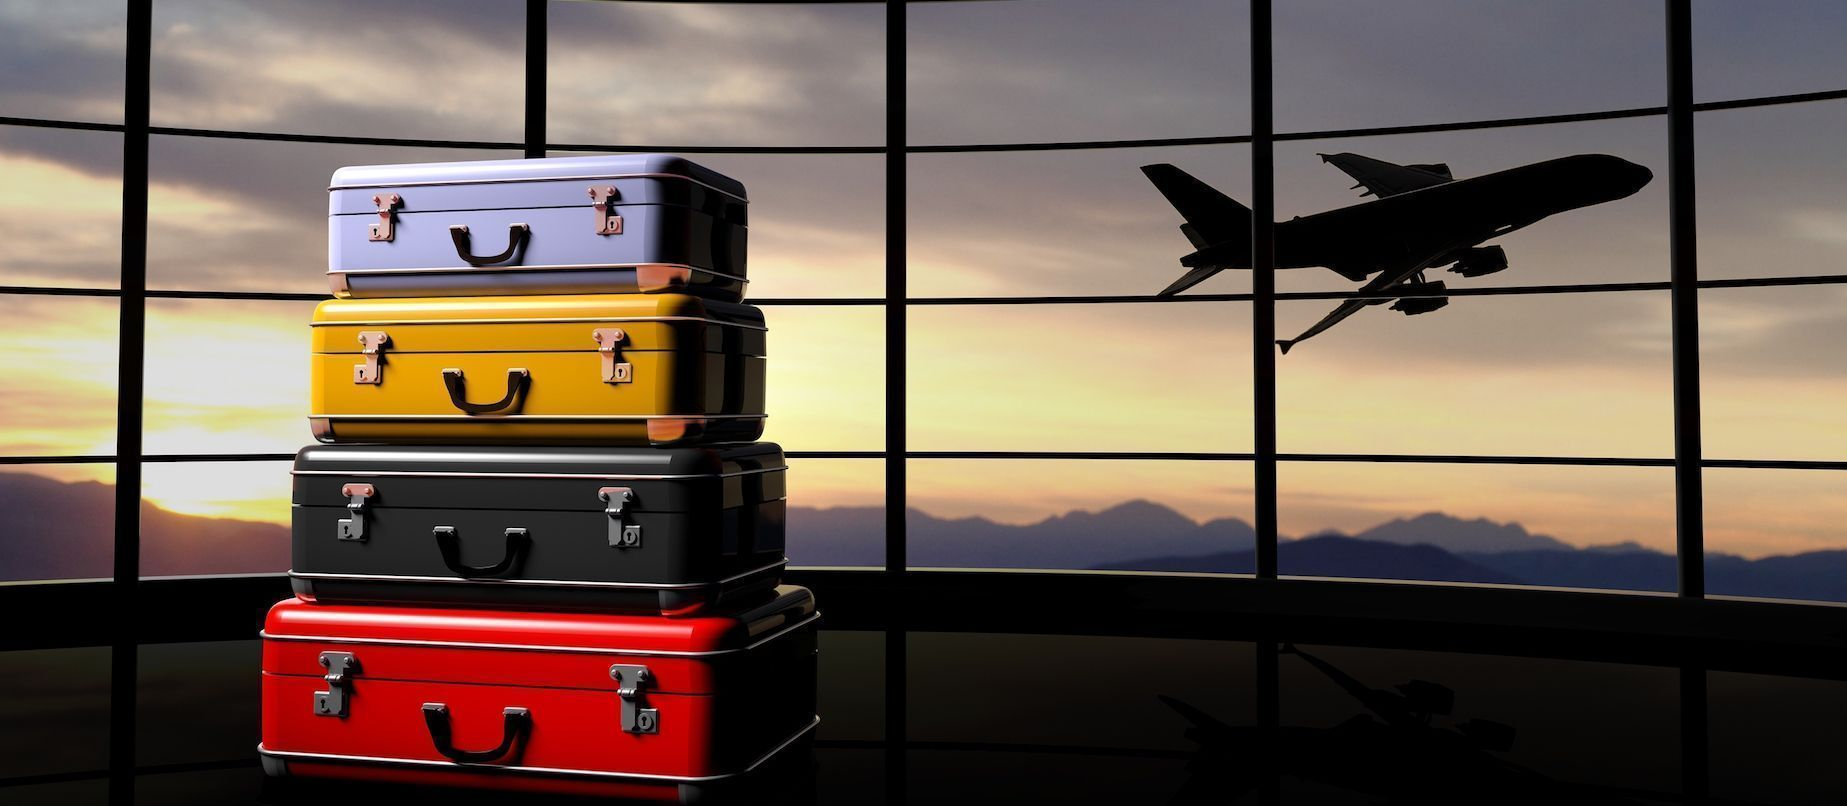 bigstock-Stack-of-suitcases-beside-airp-96098975.jpg